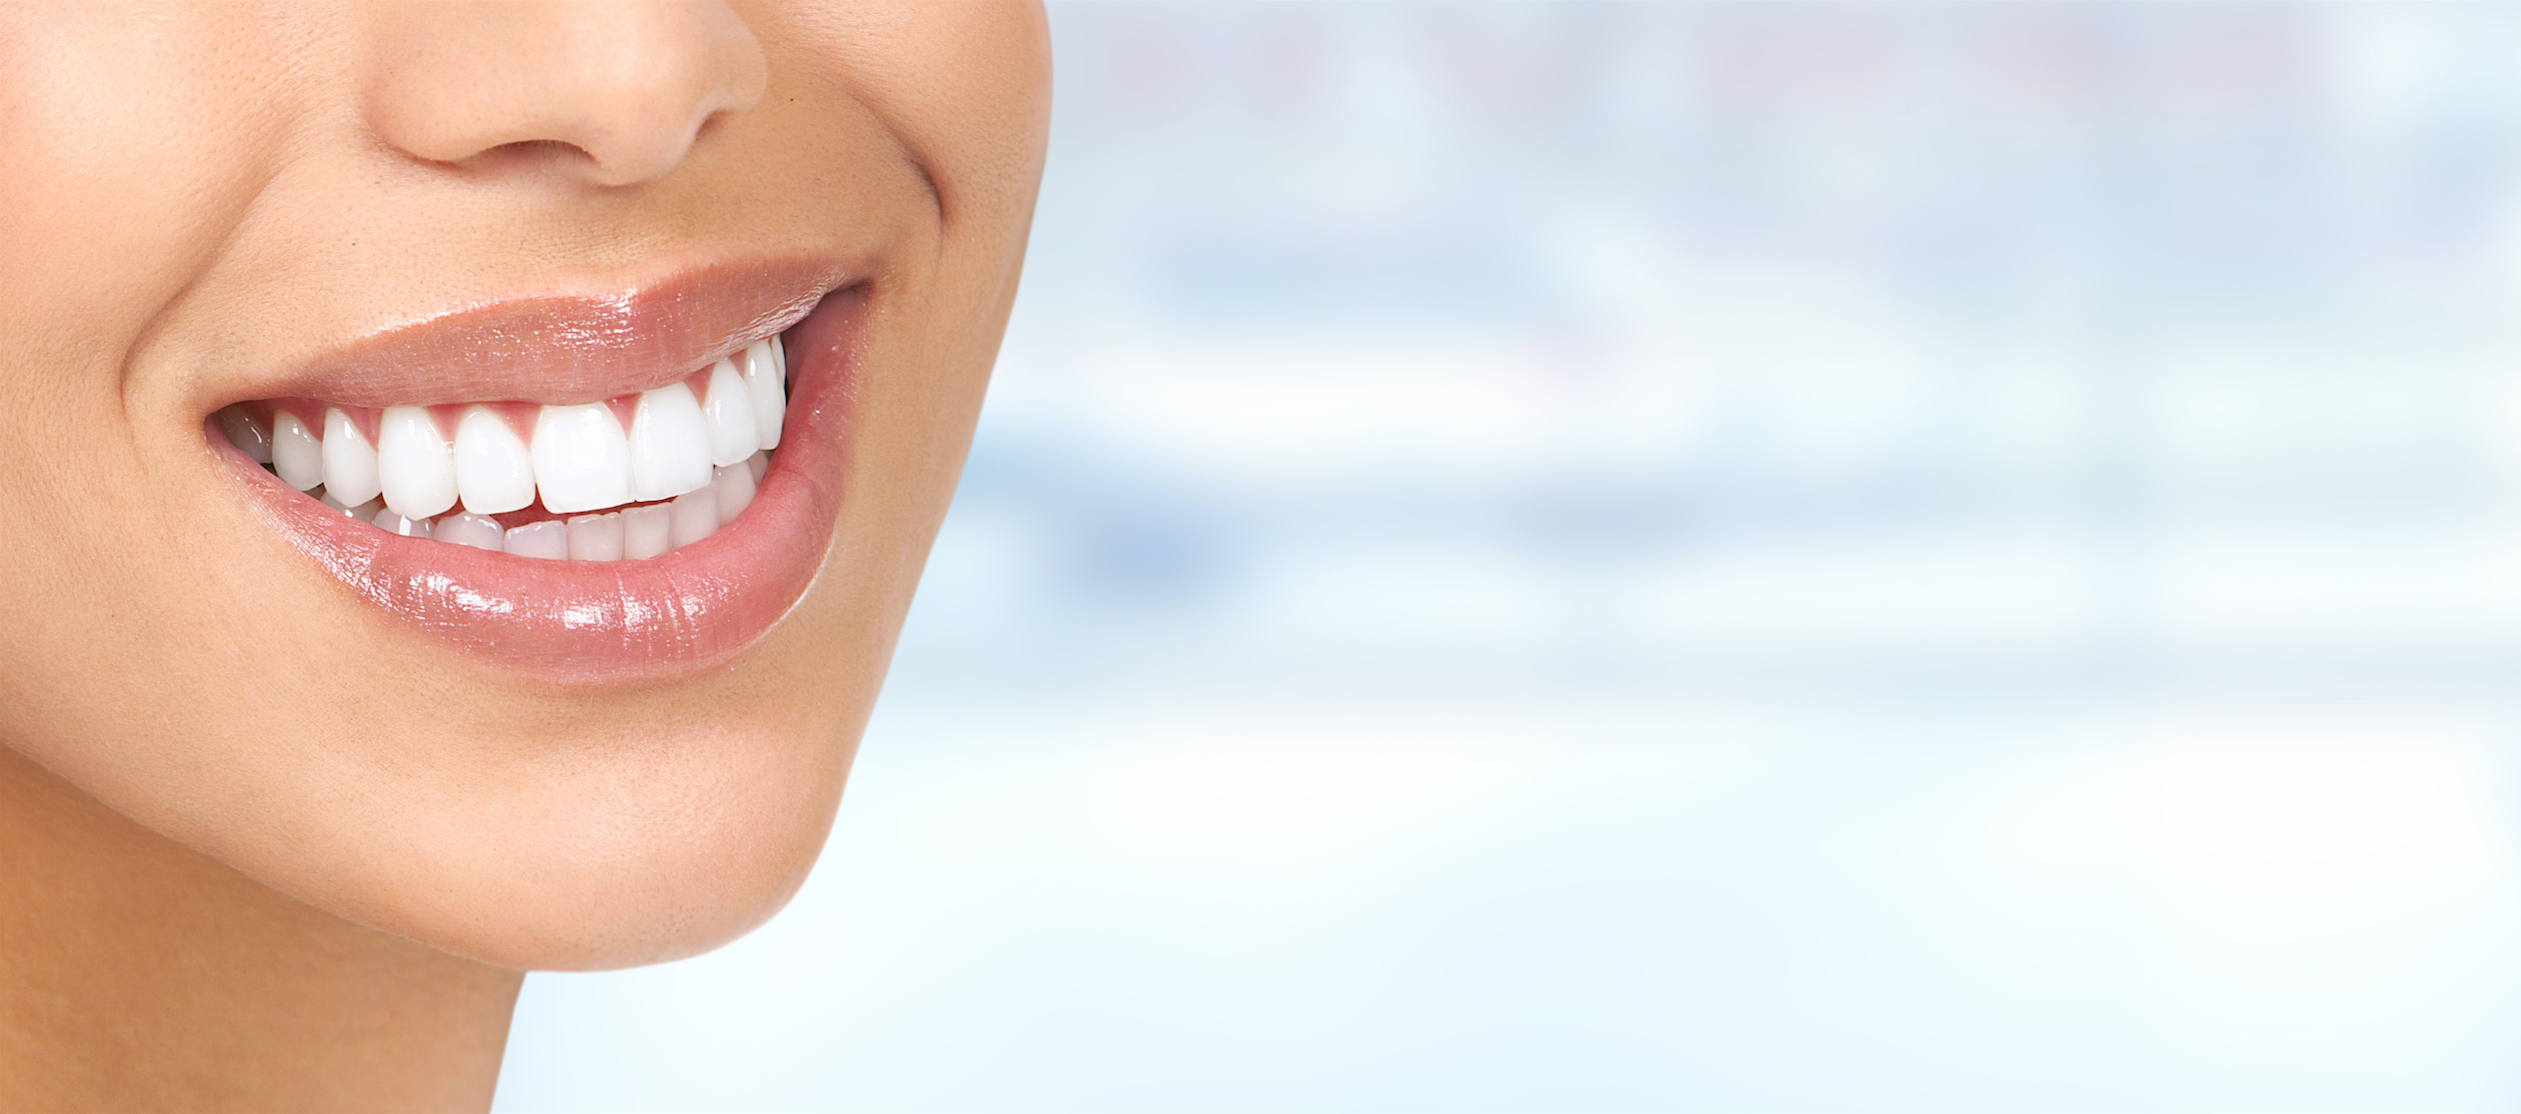 Periodontal Disease and Treatment with a Deep Cleaning